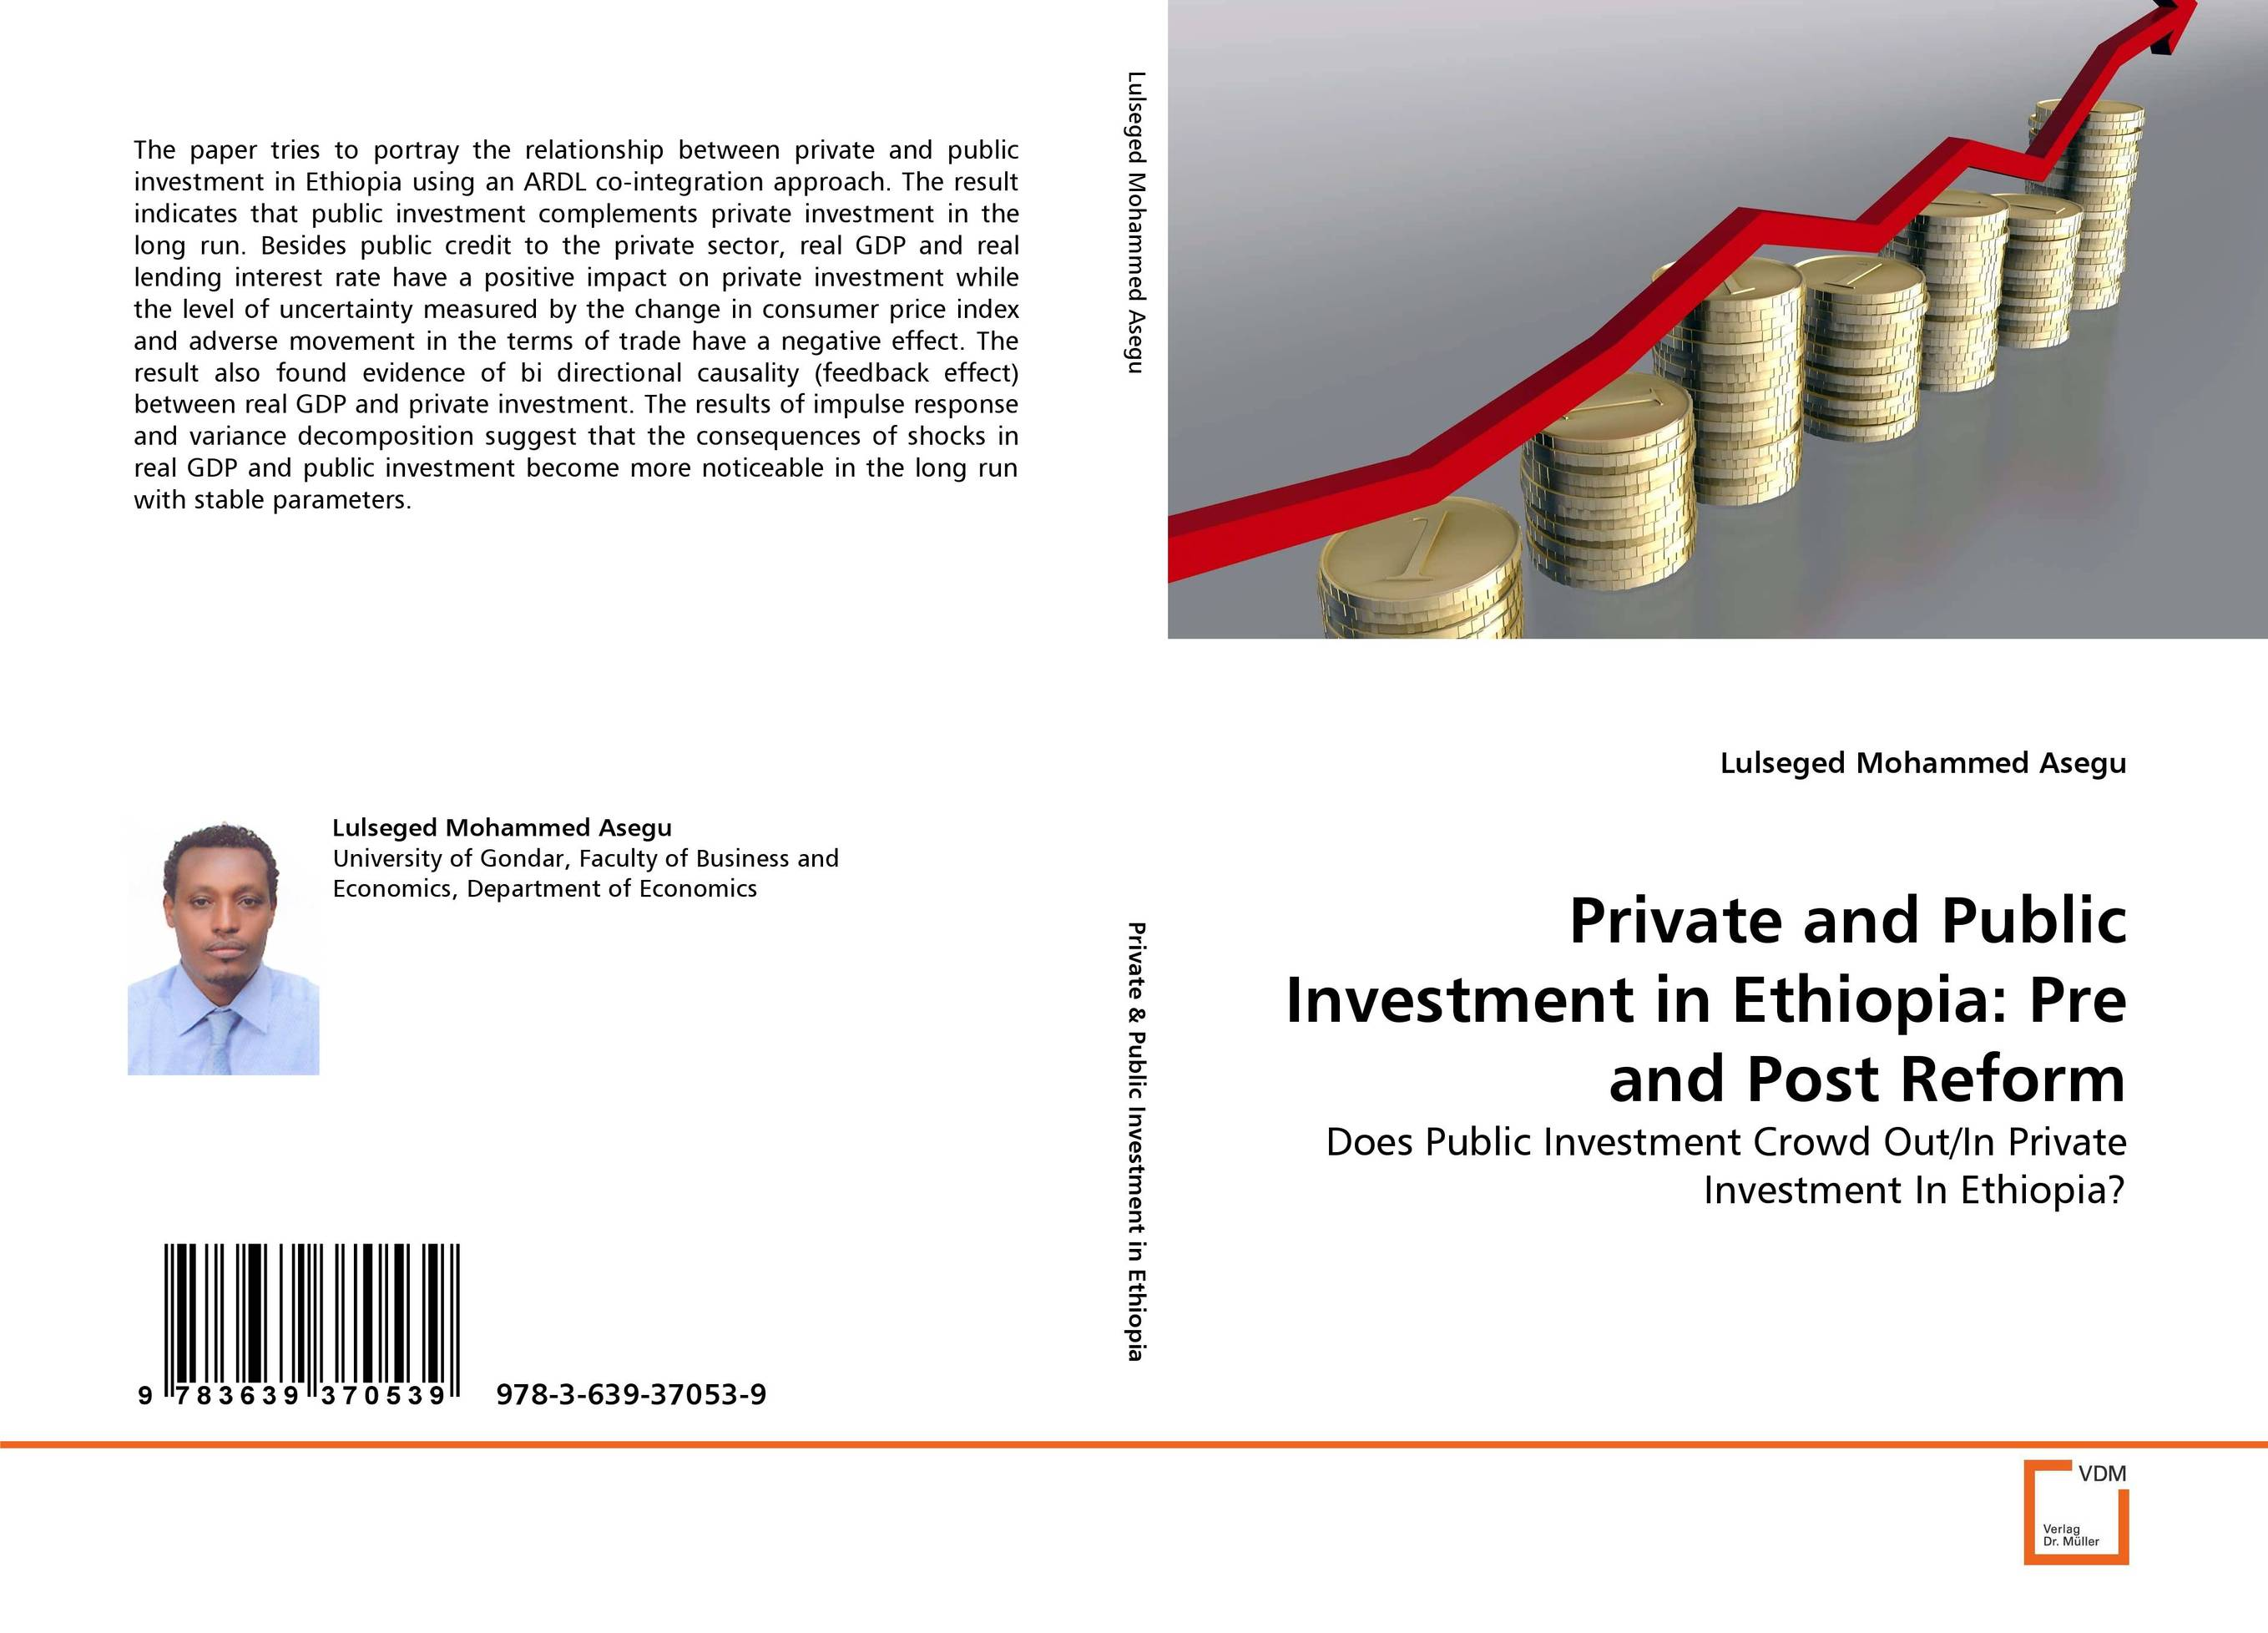 Private and Public Investment in Ethiopia: Pre and Post Reform chinese outward investment and the state the oli paradigm perspective